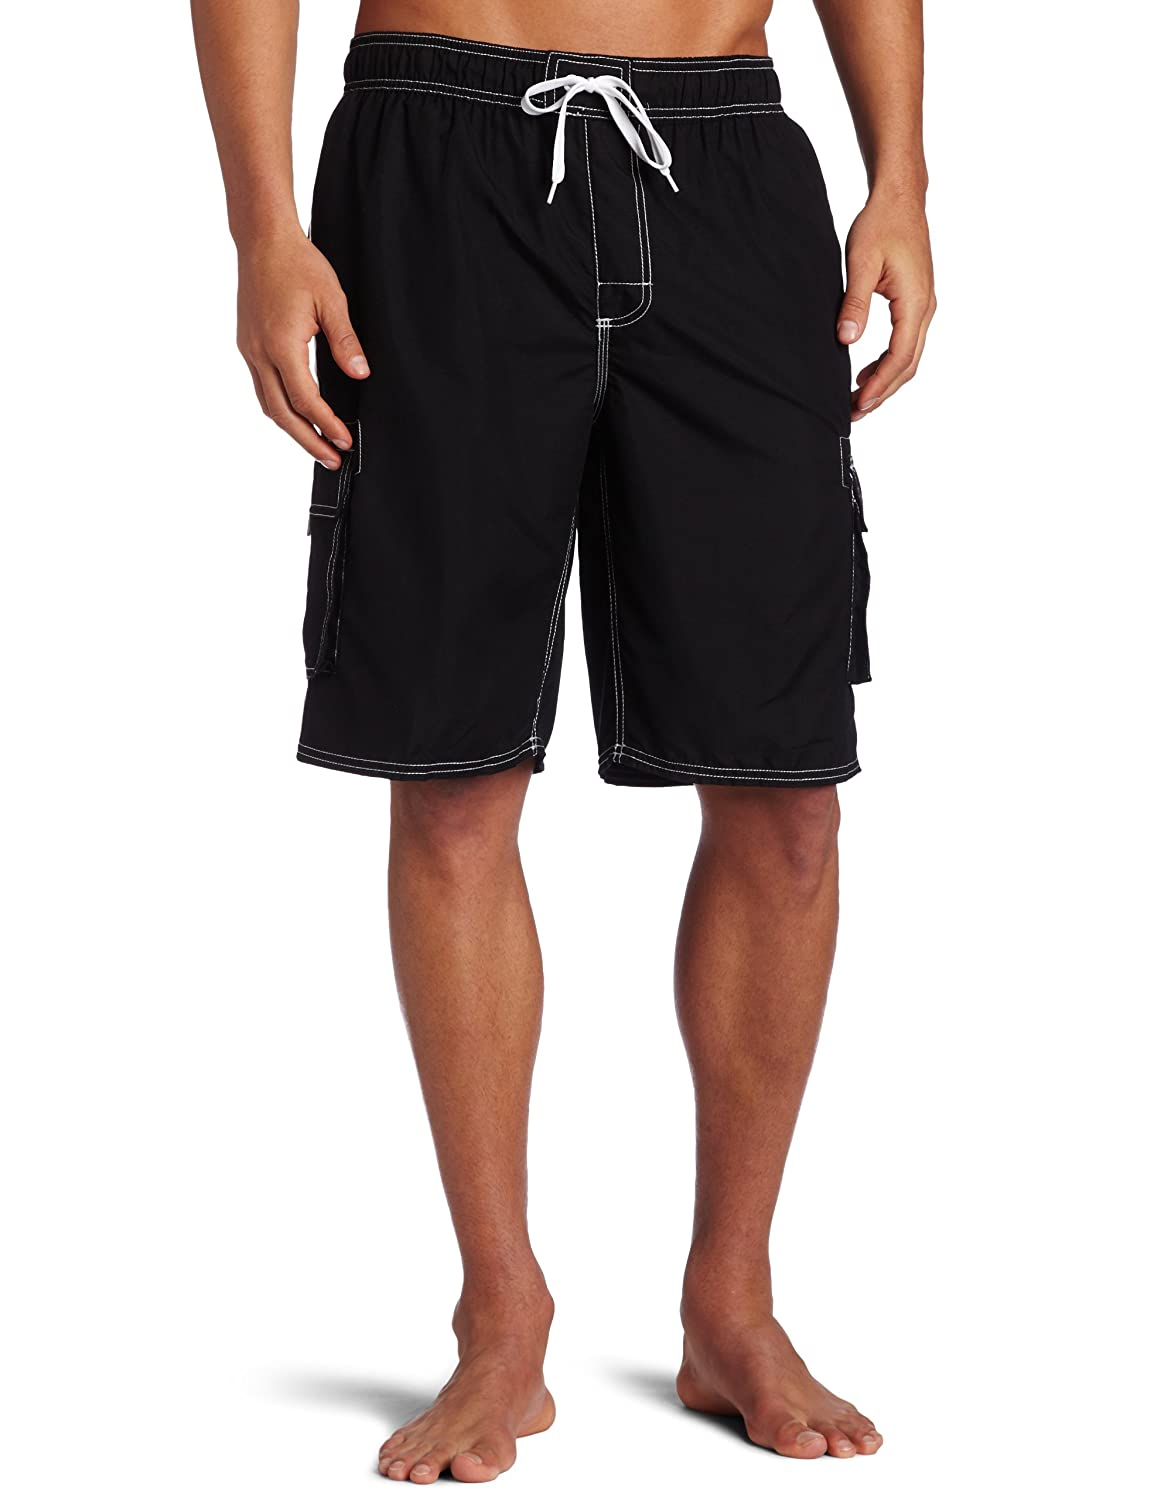 Kanu Surf Men's Barracuda Trunks, Black, Large $17.50